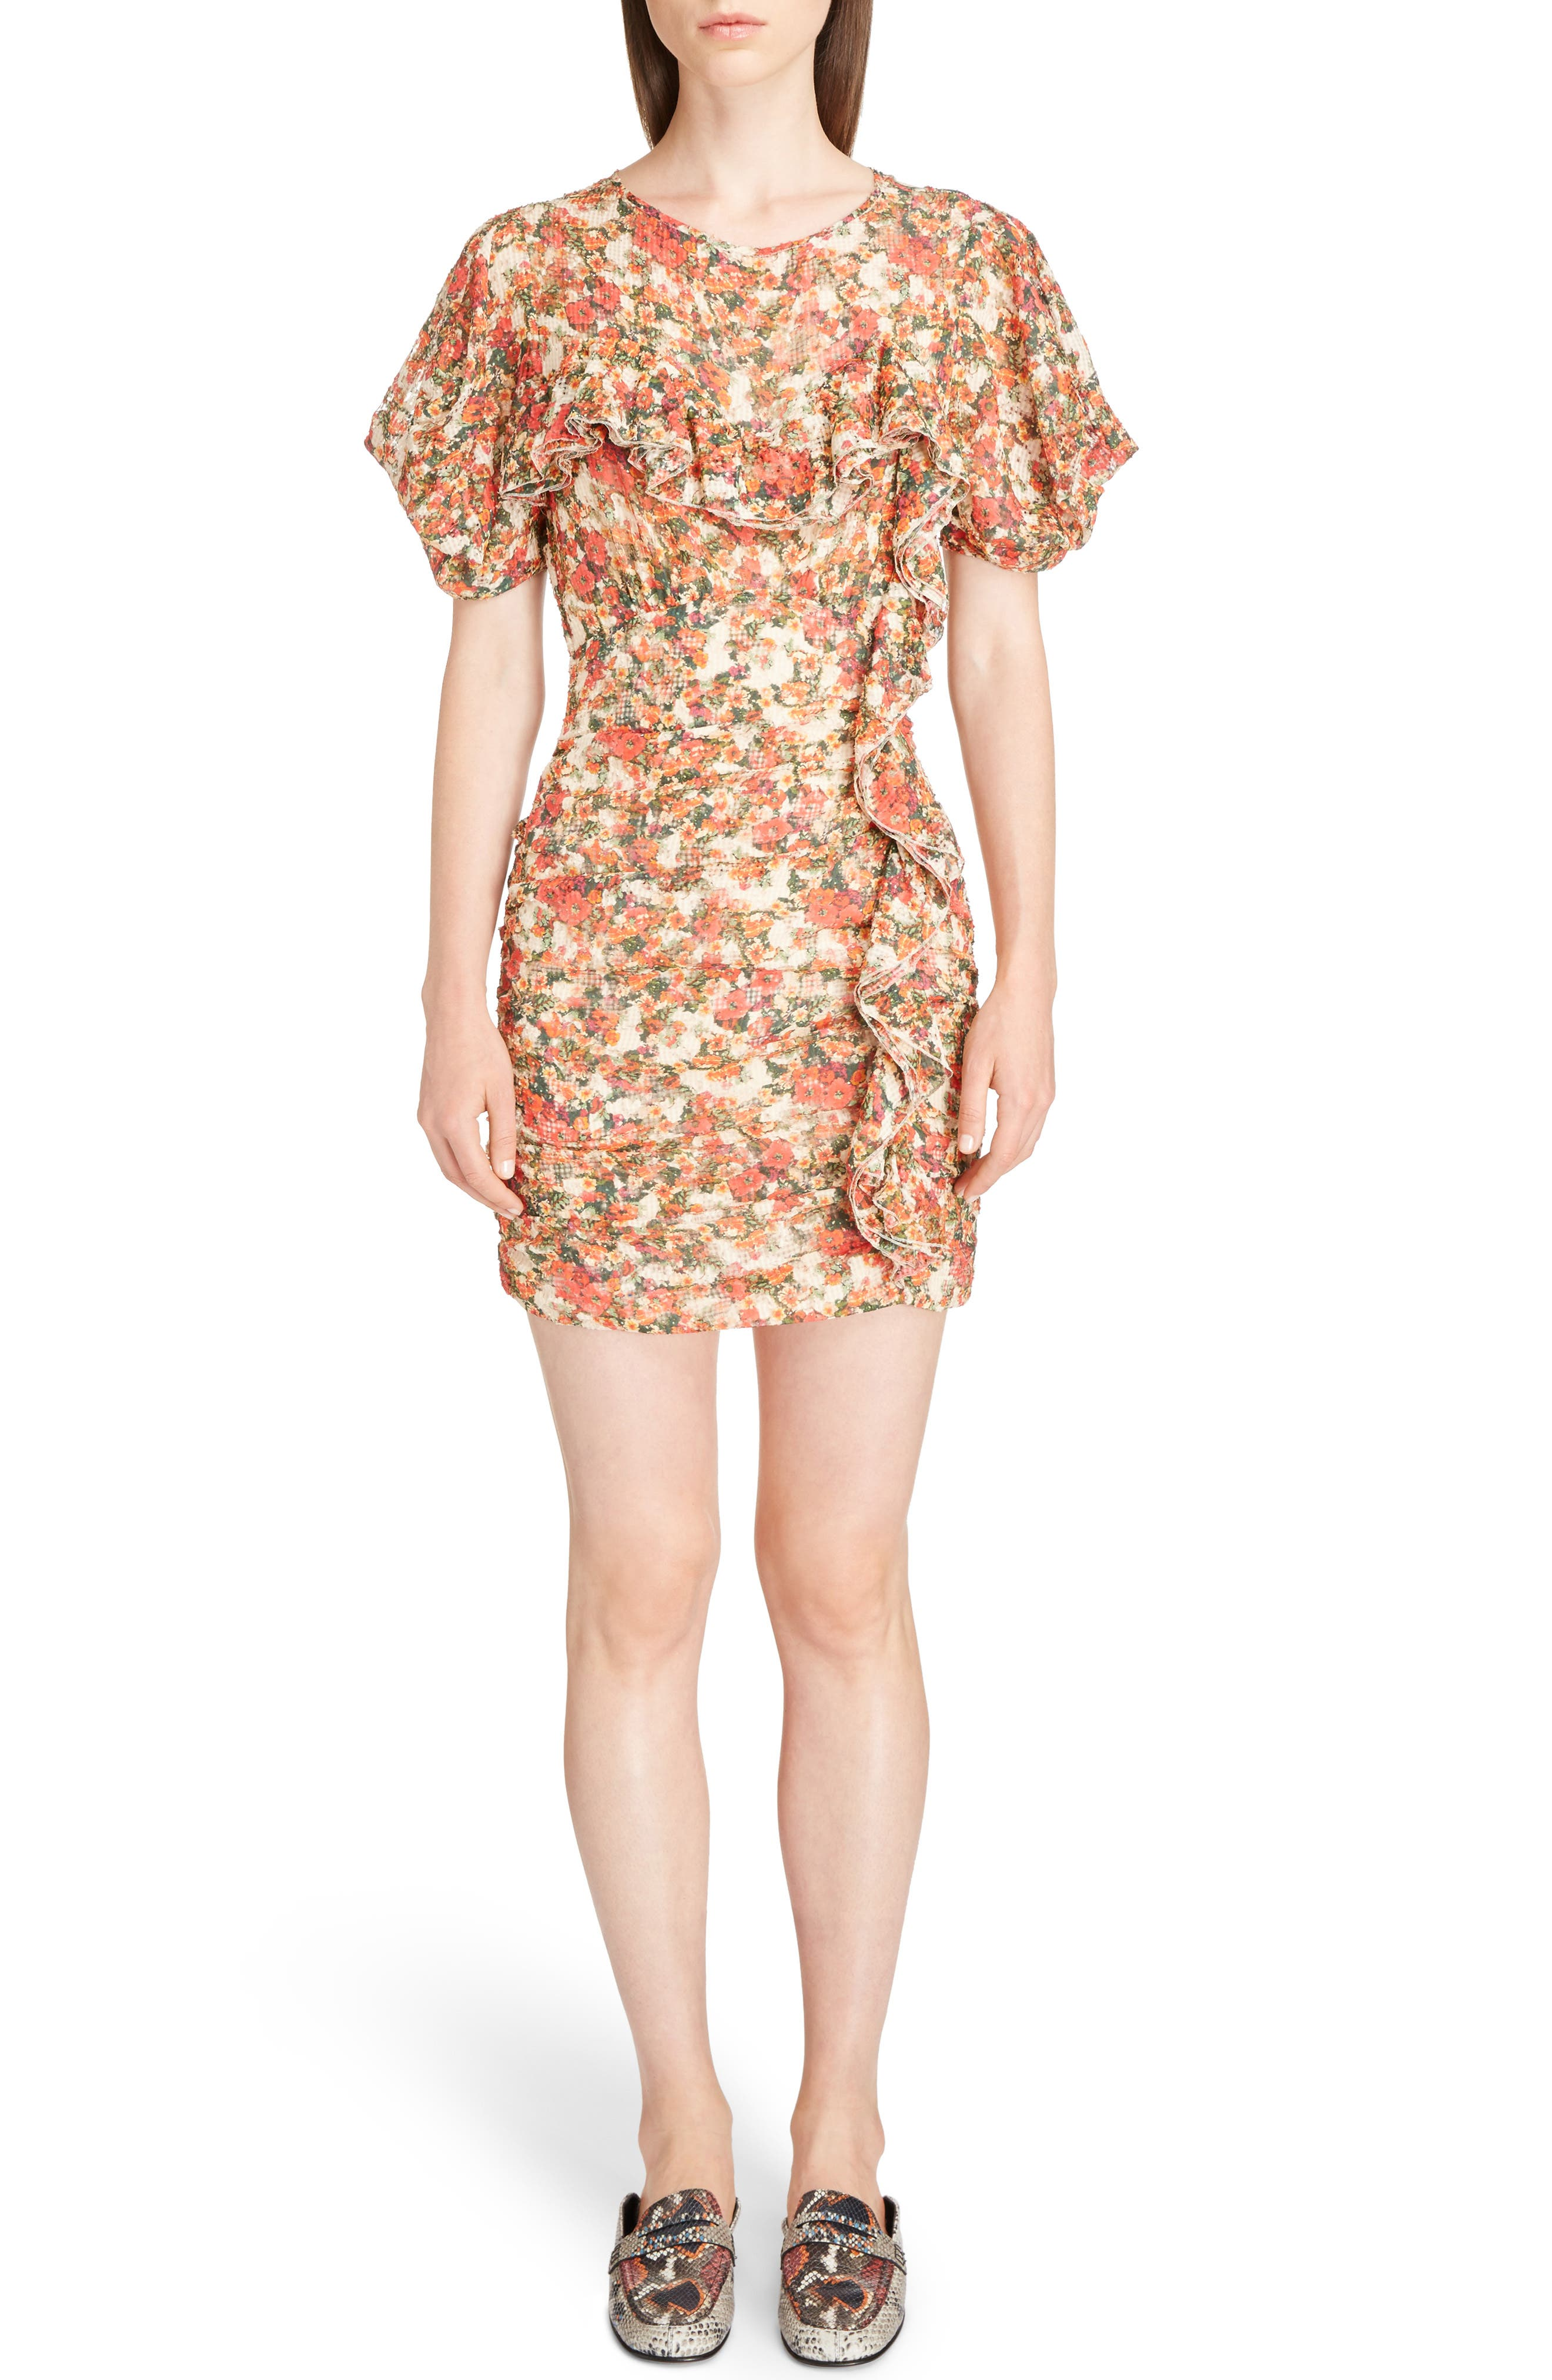 Isabel Marant Floral Print Ruffle Dress